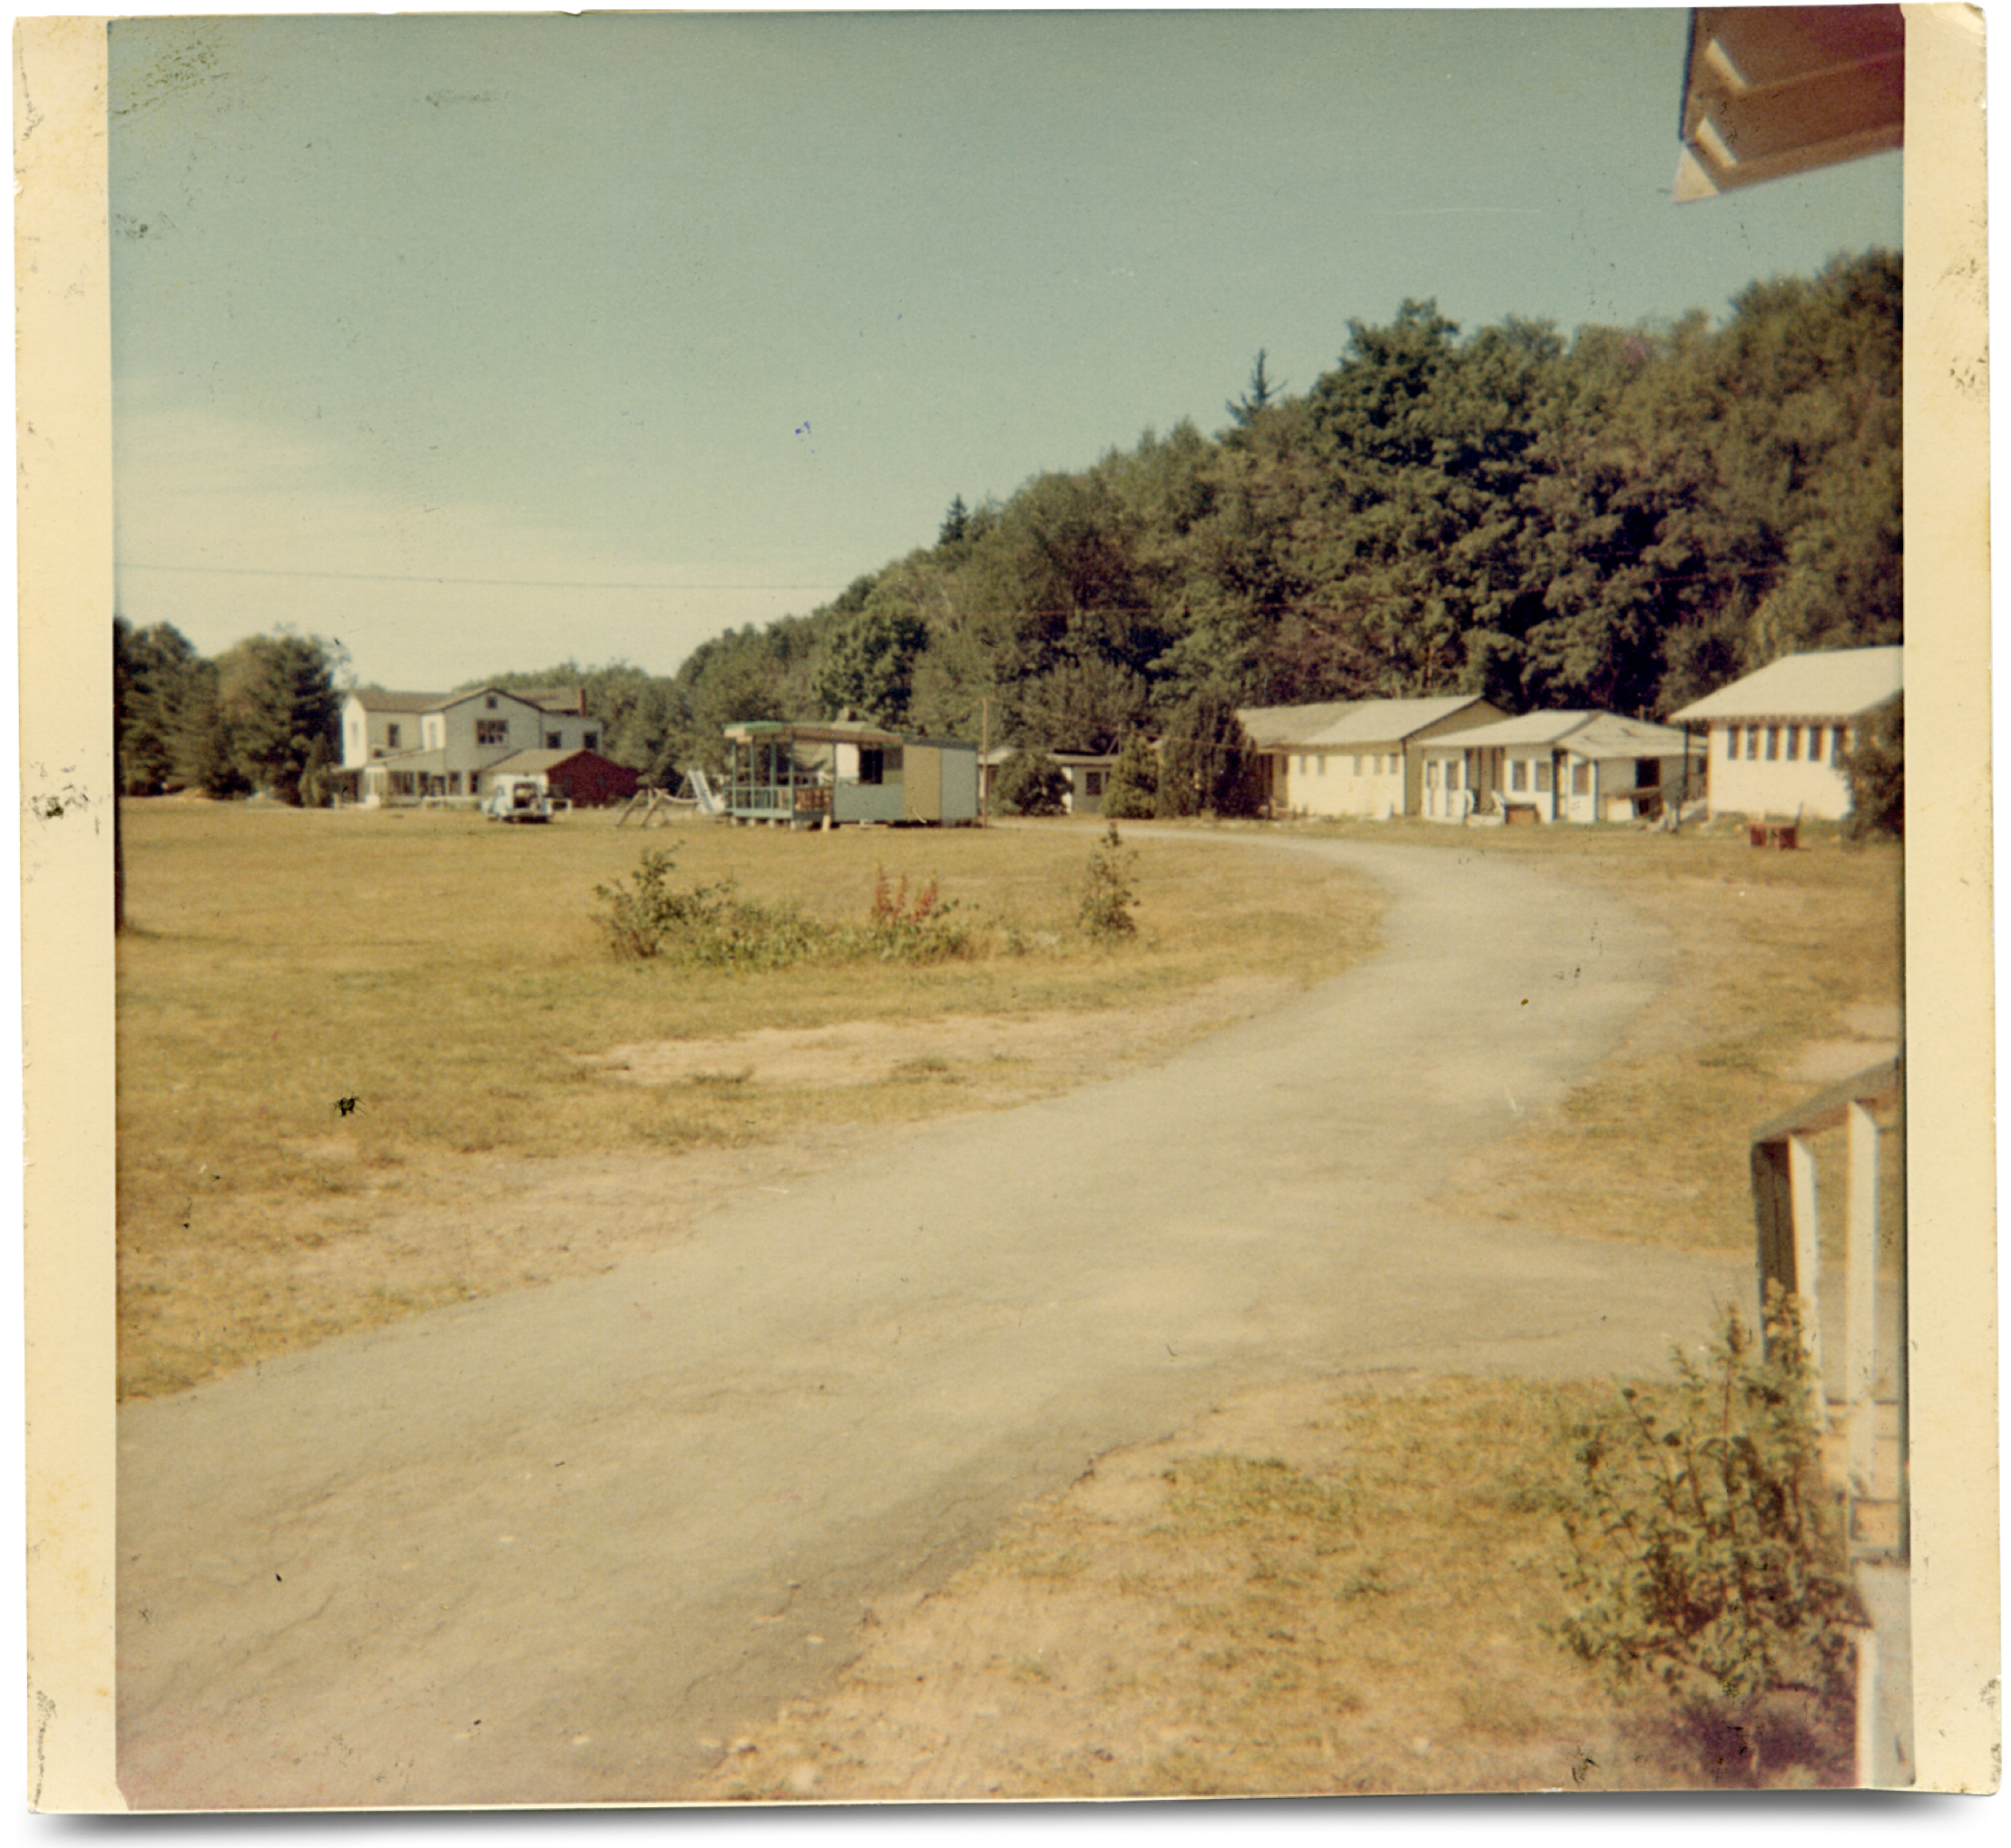 Camp Jened is pictured in a sun-faded photograph. Low, white buildings line the paved road through camp, and trees rise up behind them.